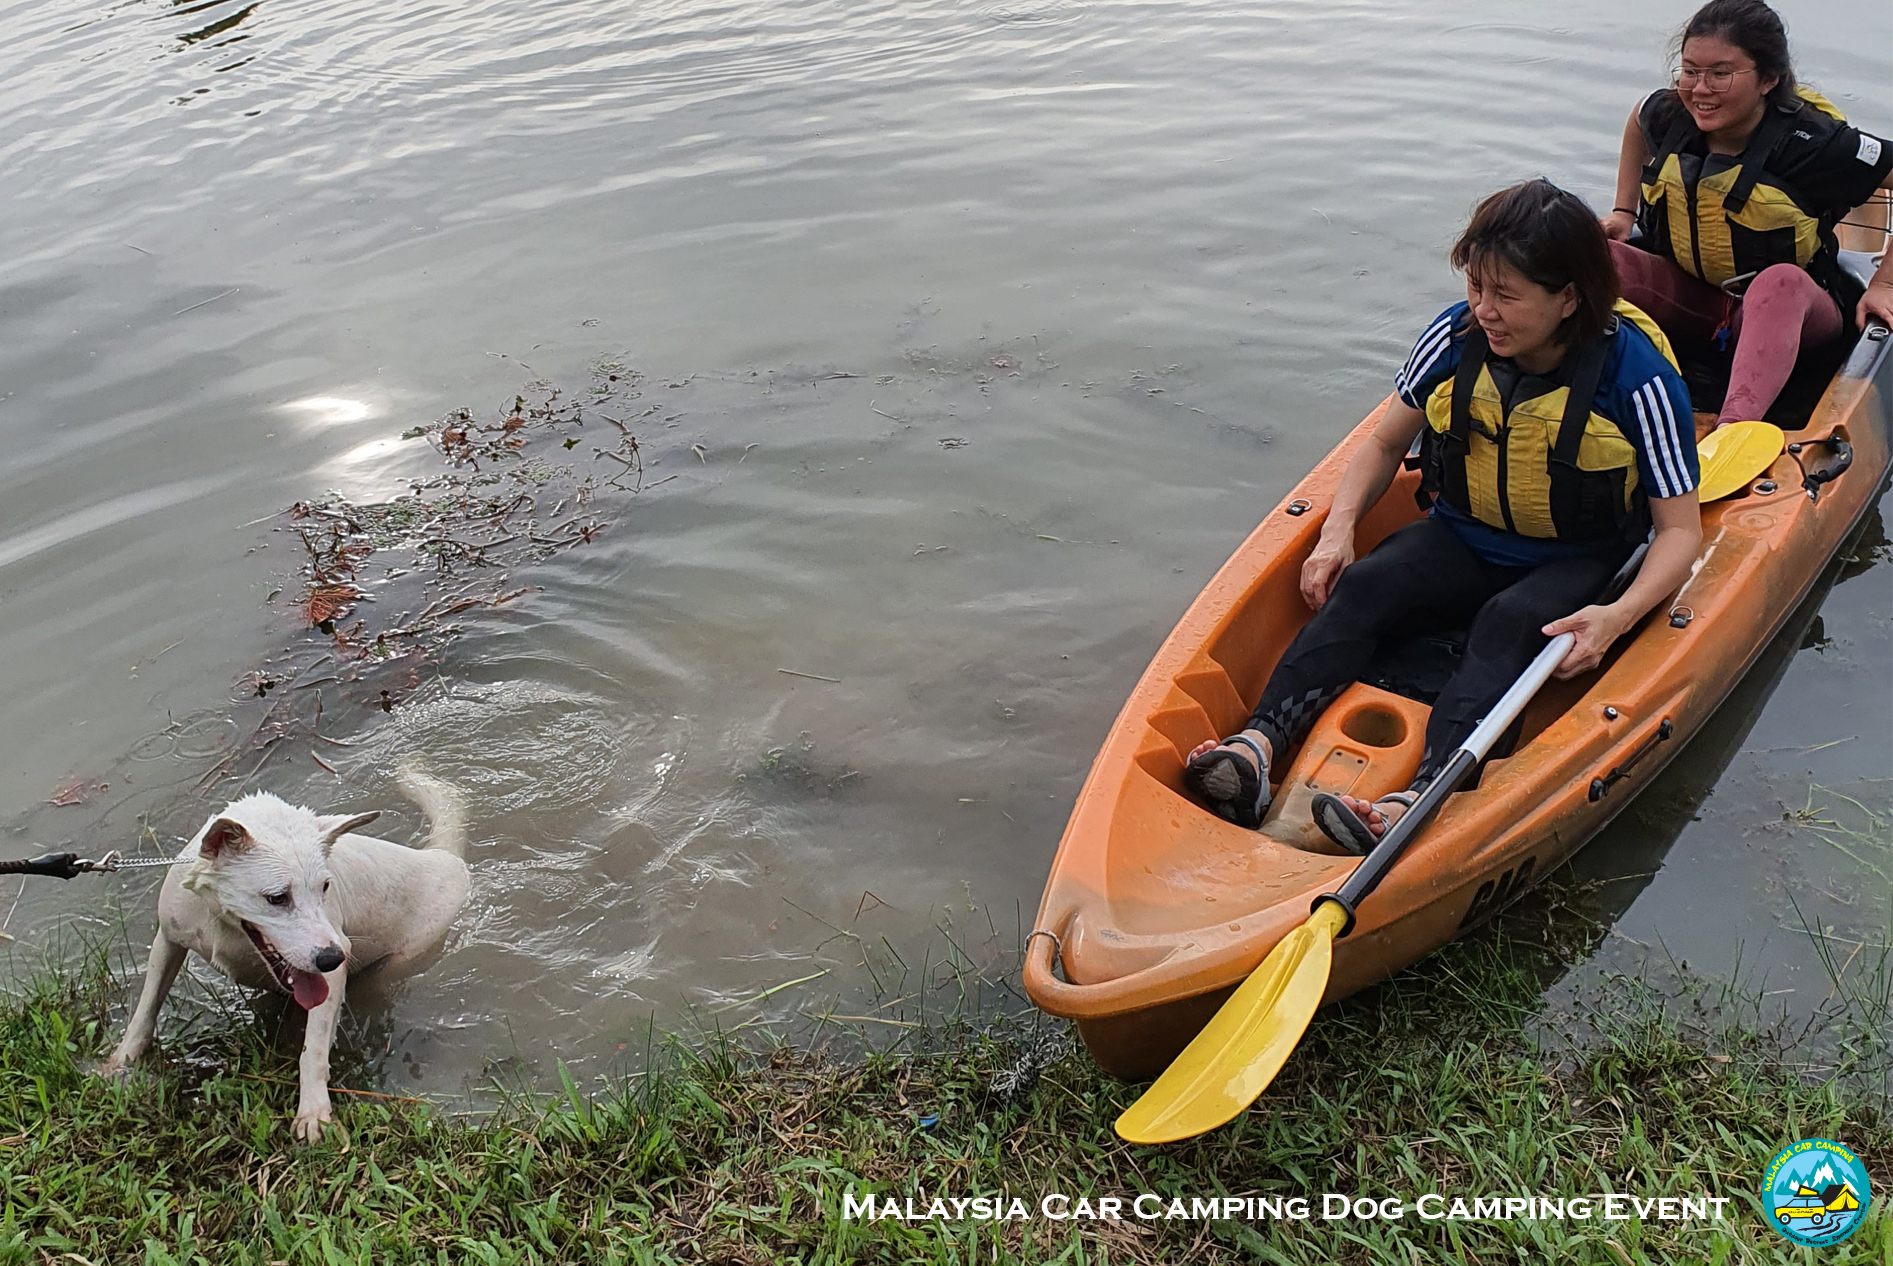 kayaking_dog_dog_camping_event_selangor_camping_site_malaysia_car_camping_private_event_organizer-5